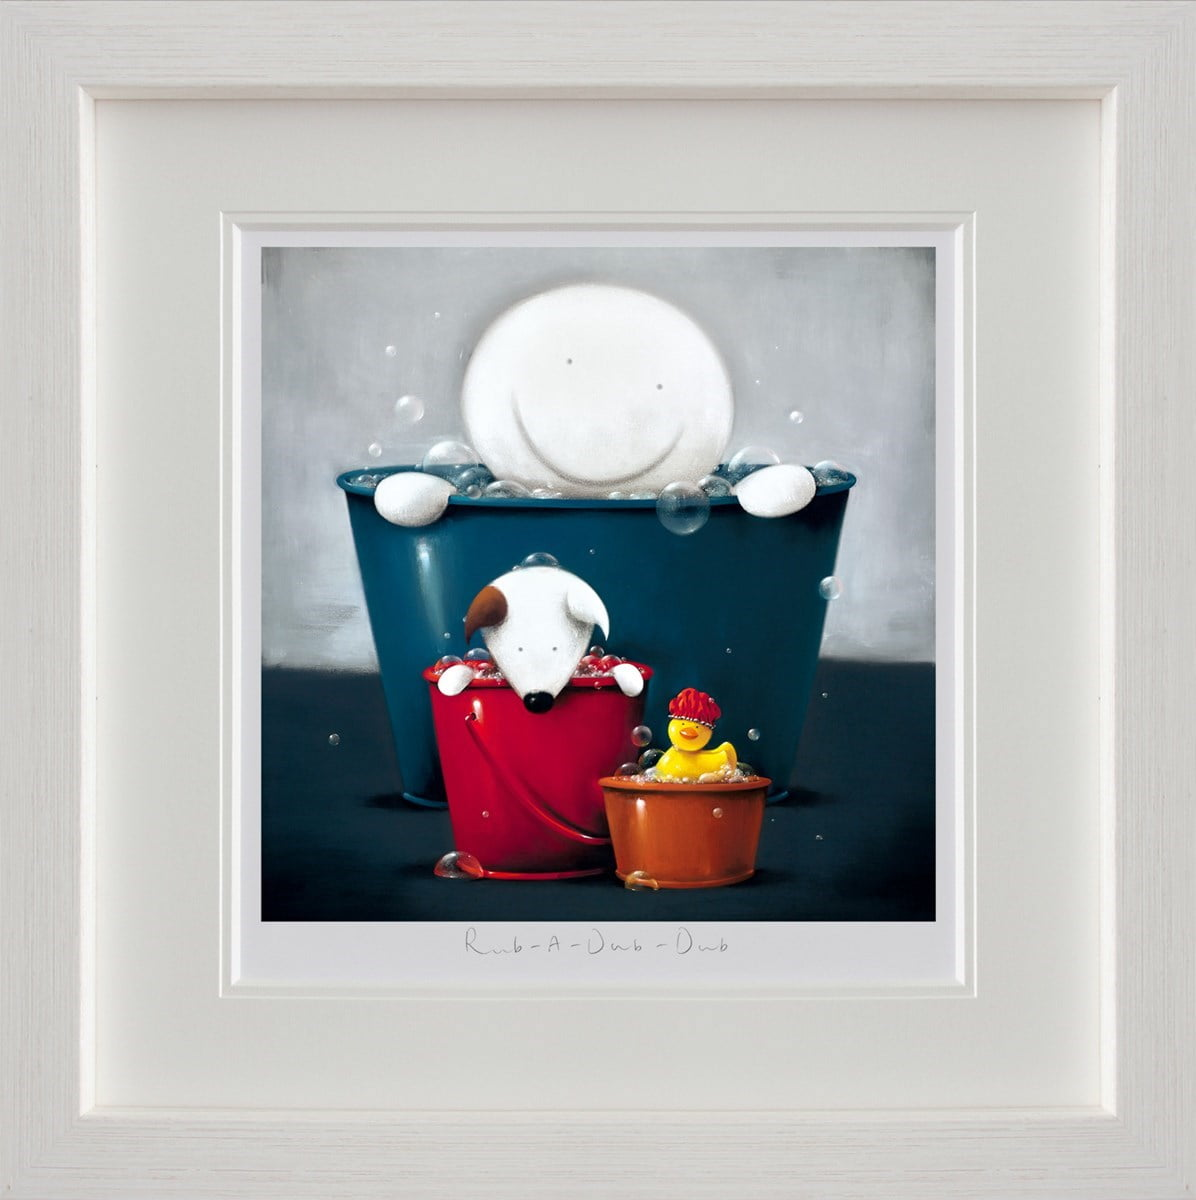 Rub A Dub Dub ~ Doug Hyde